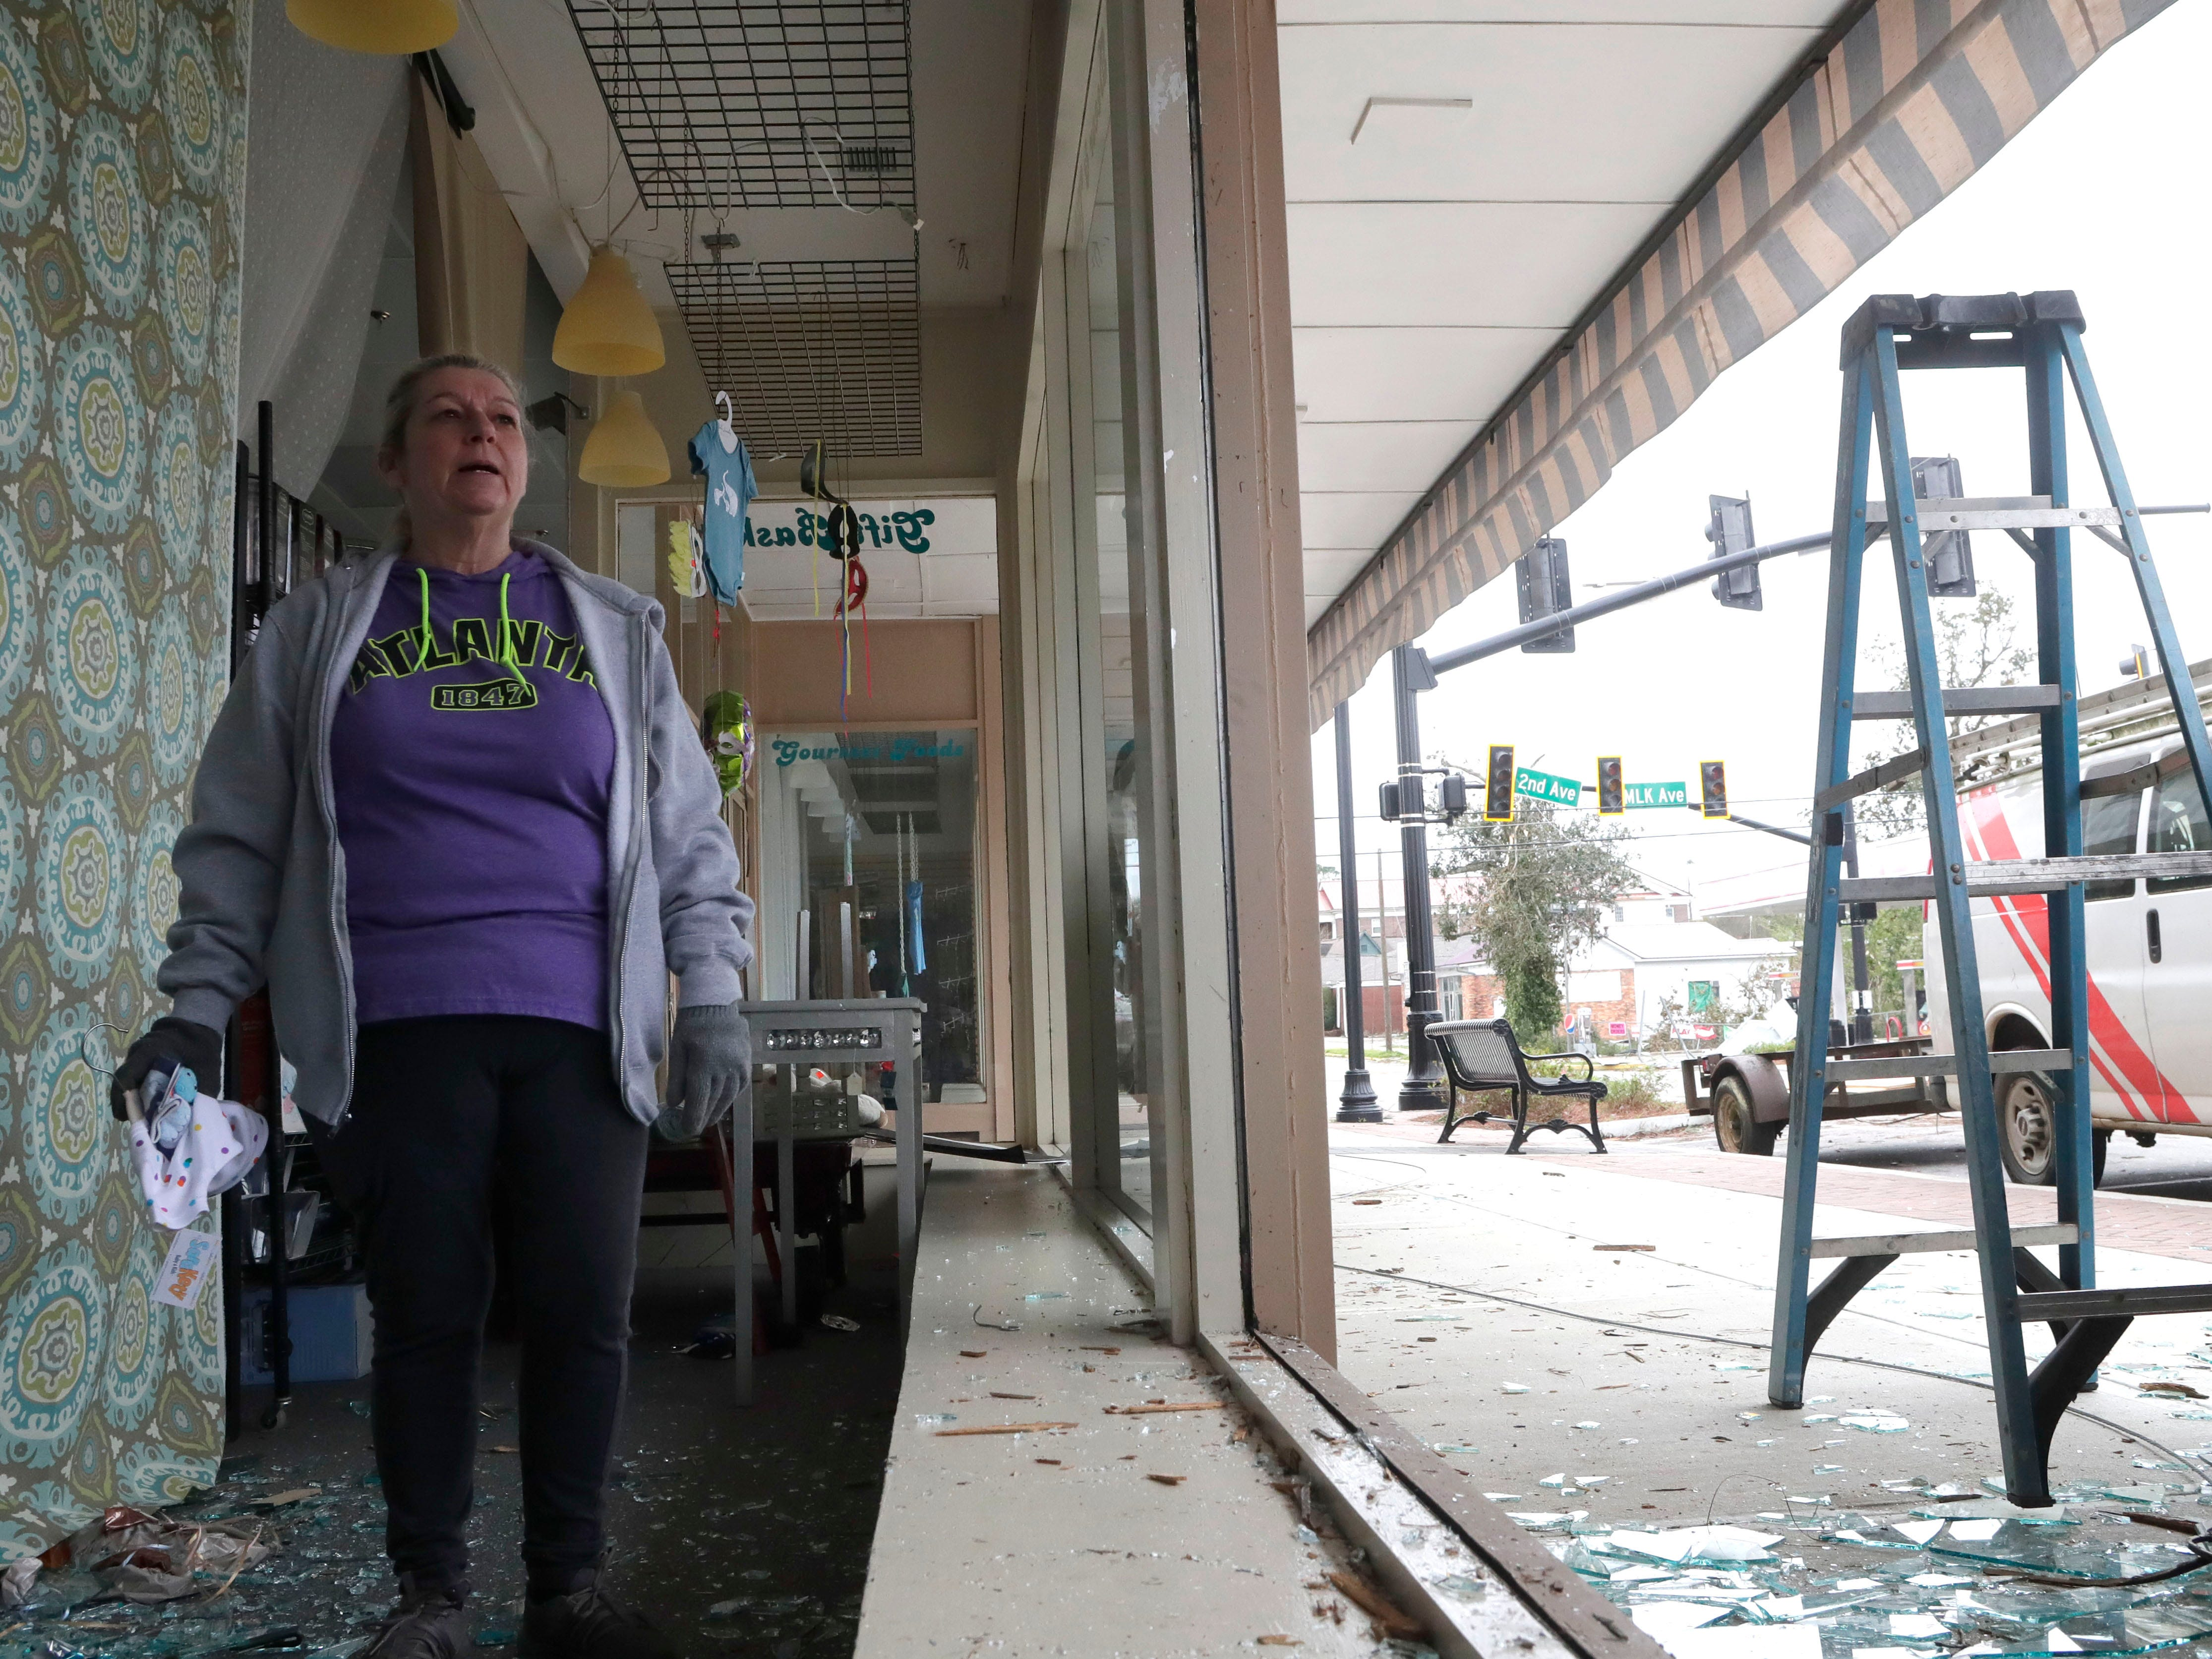 Debbi Miller, owner of Miss Myrt's in  Cairo, Ga., cleans up shattered glass on March 4, 2019.